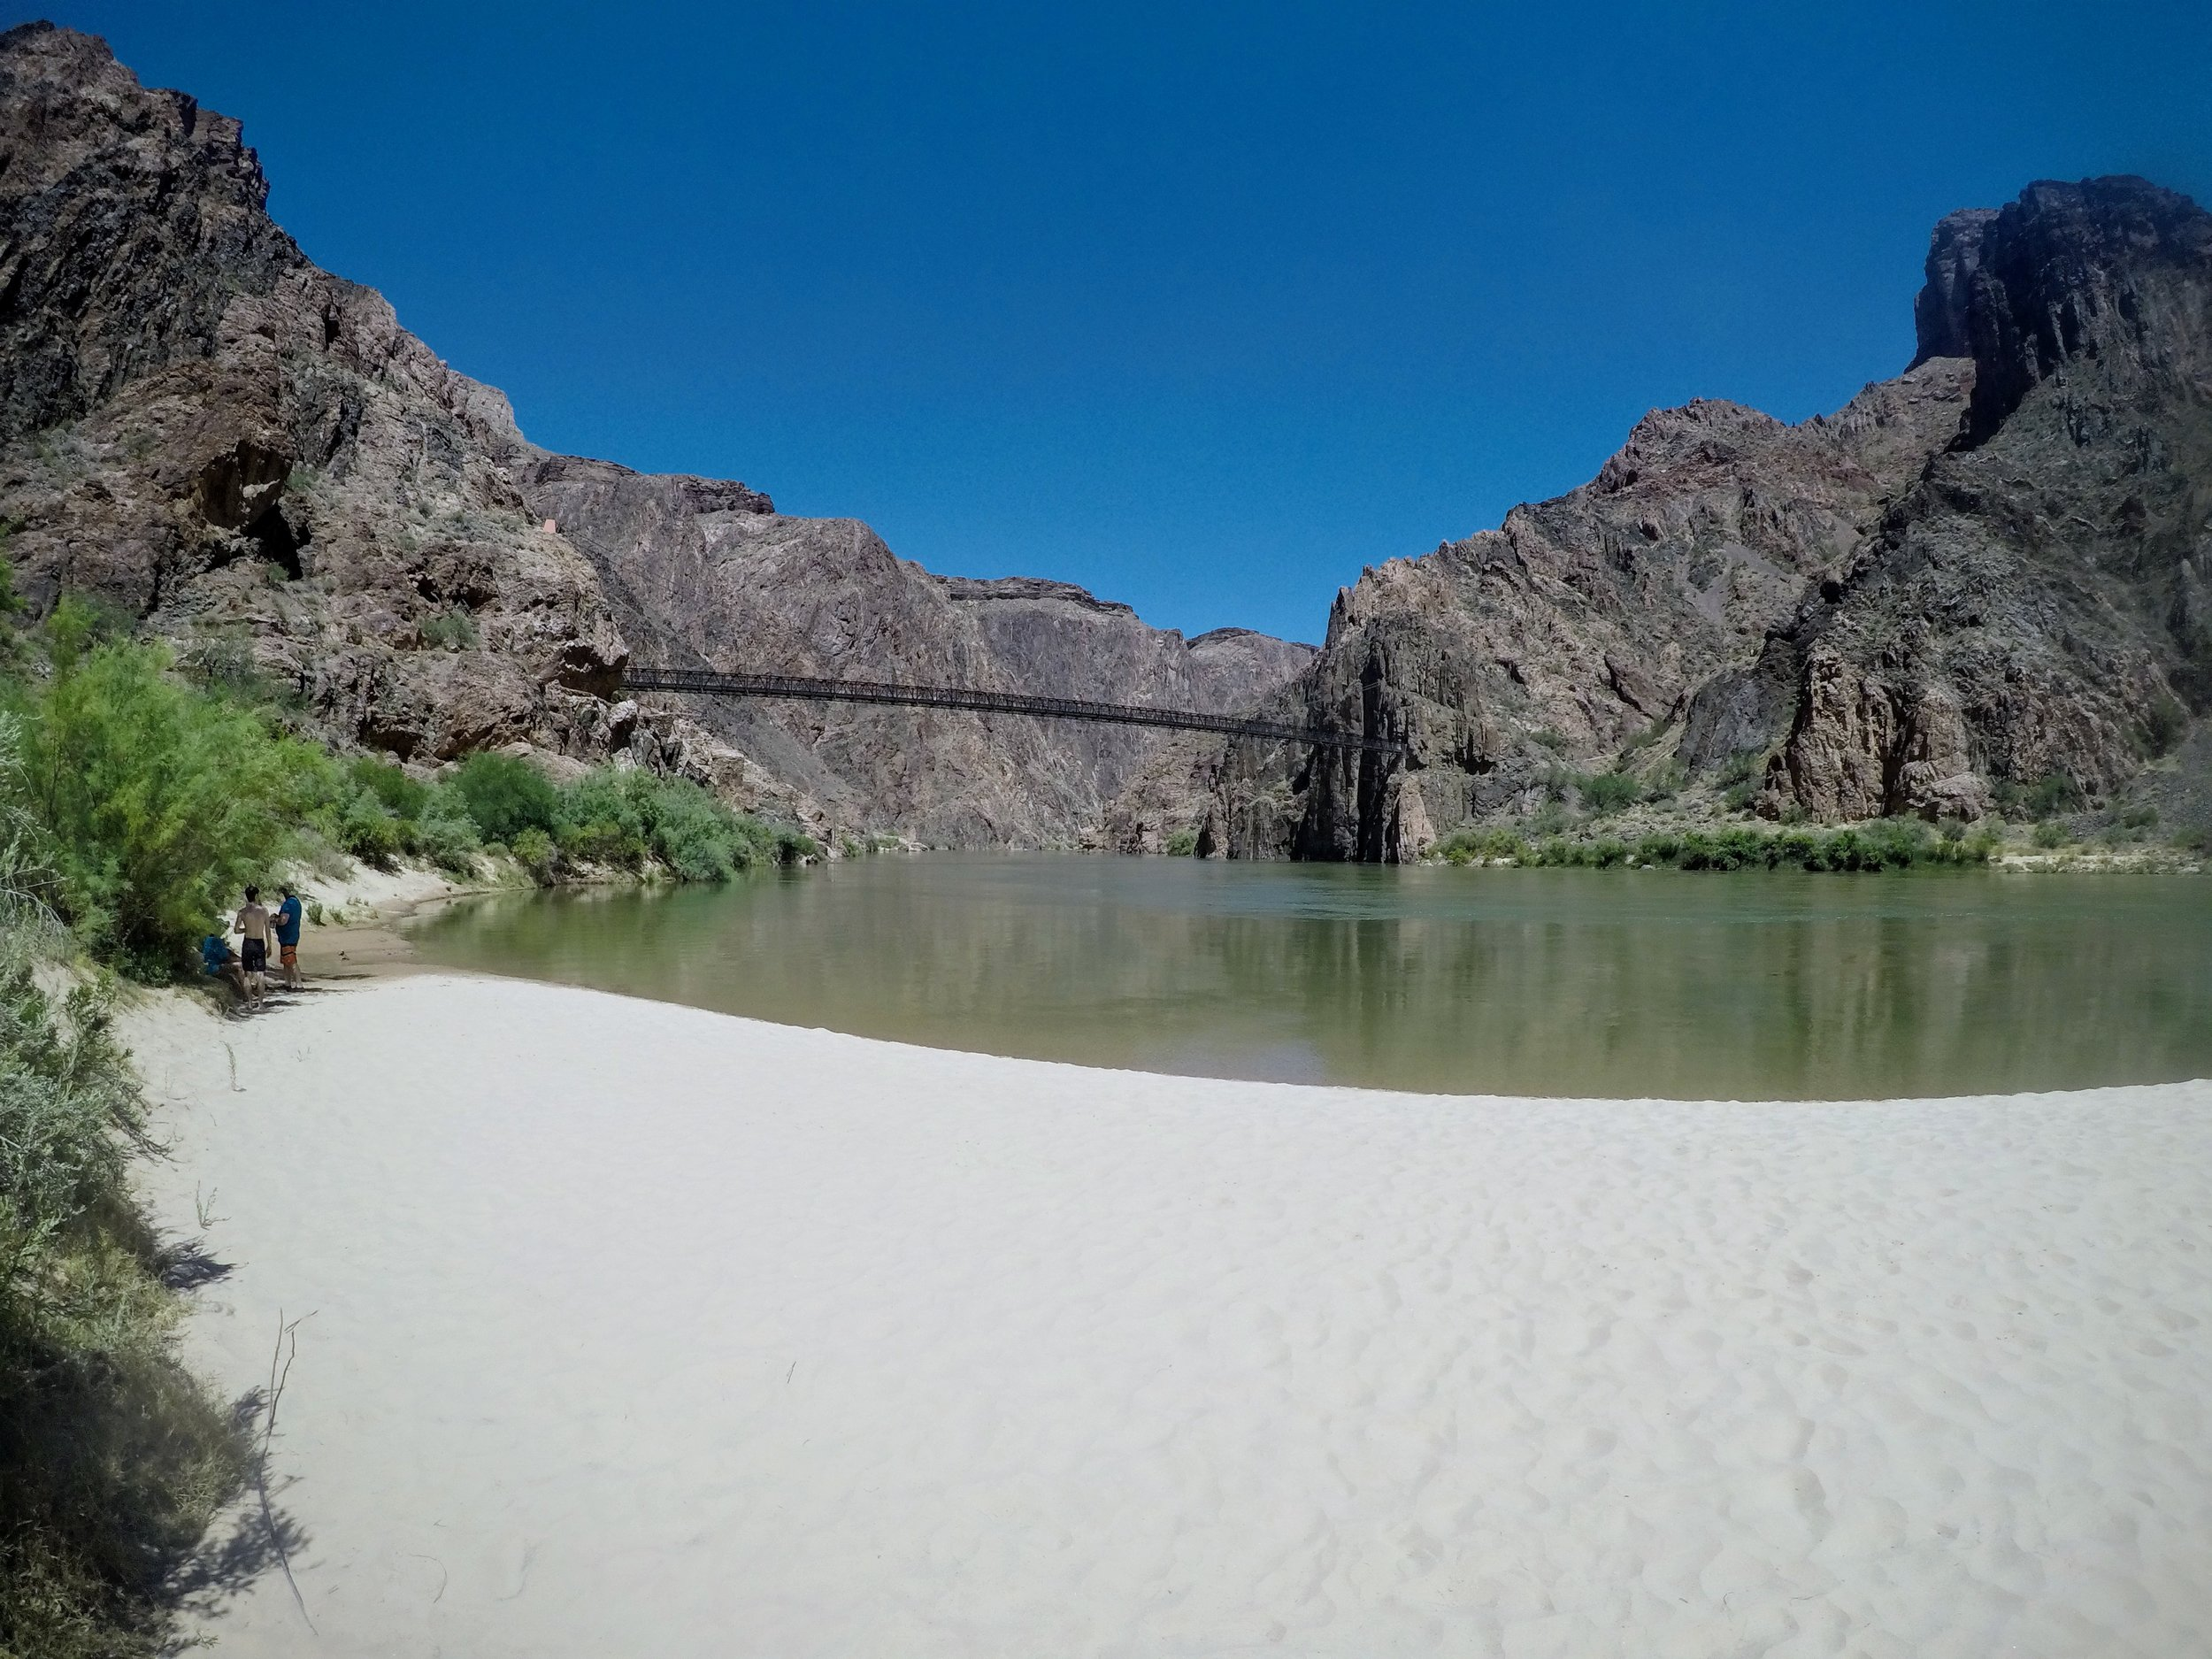 View of the Colorado River from Boat Beach, a short walk from Bright Angel Campground. Bridge to South Kaibab trail in the distance.